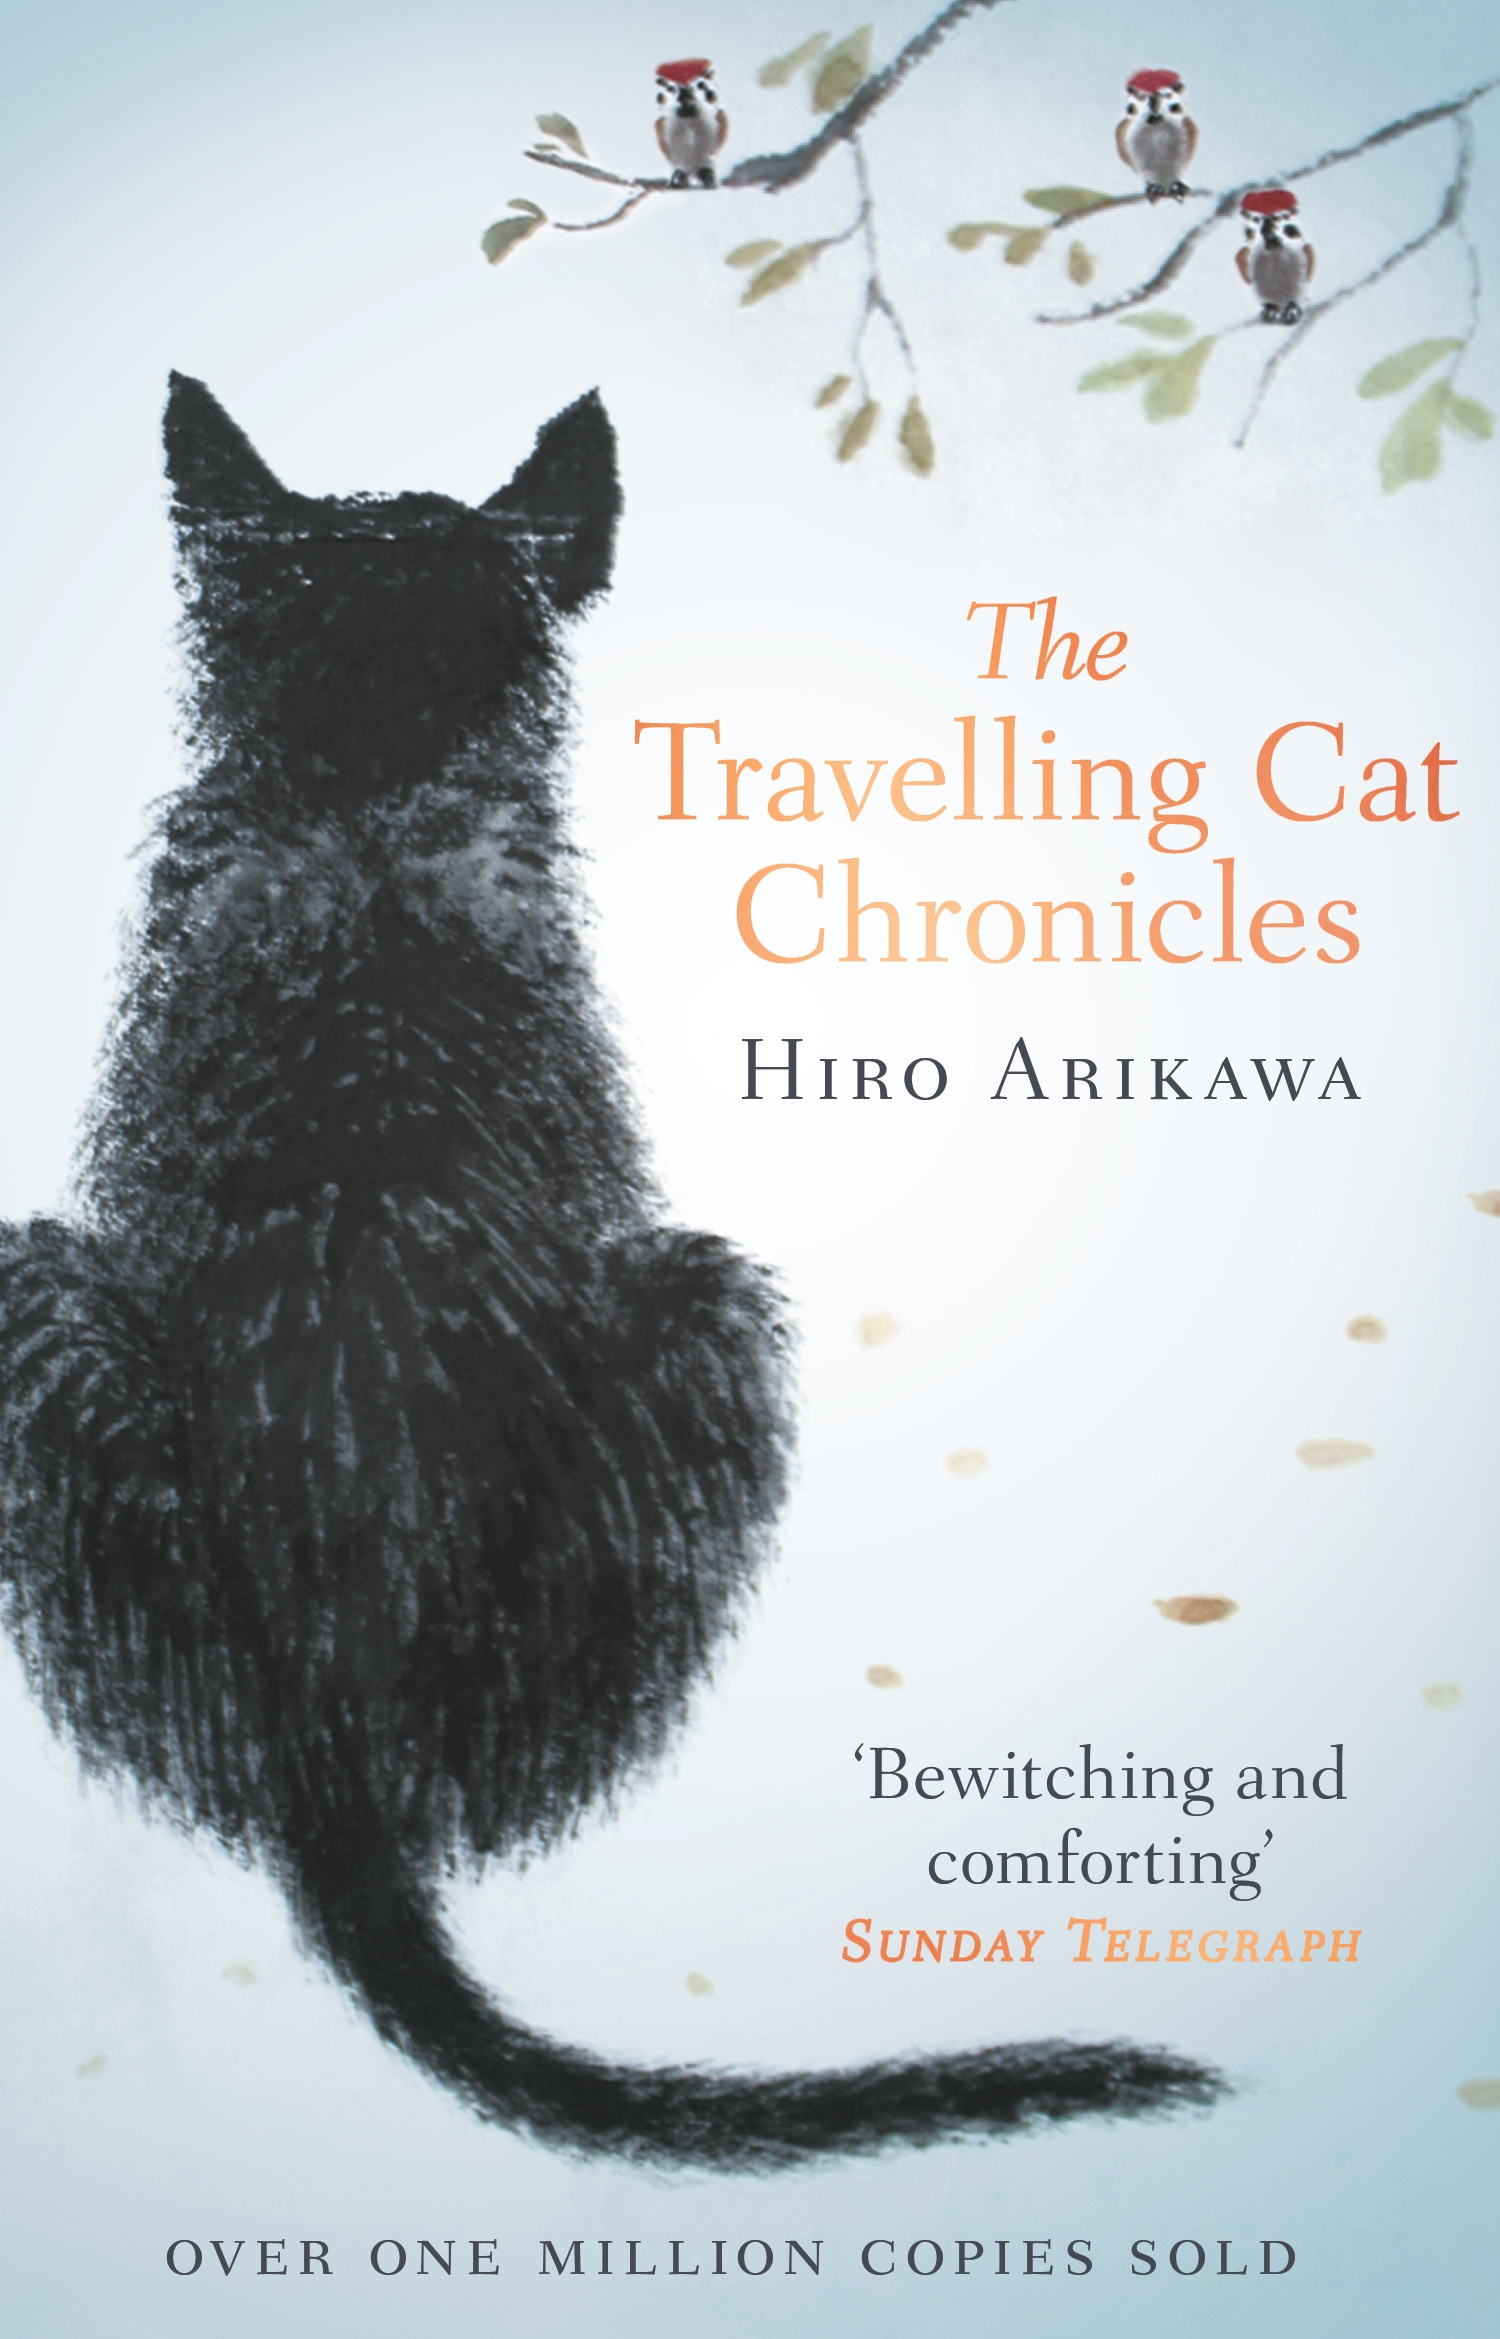 The Travelling Cat Chronicles by Hiro Arikawa, ISBN: 9780857524195